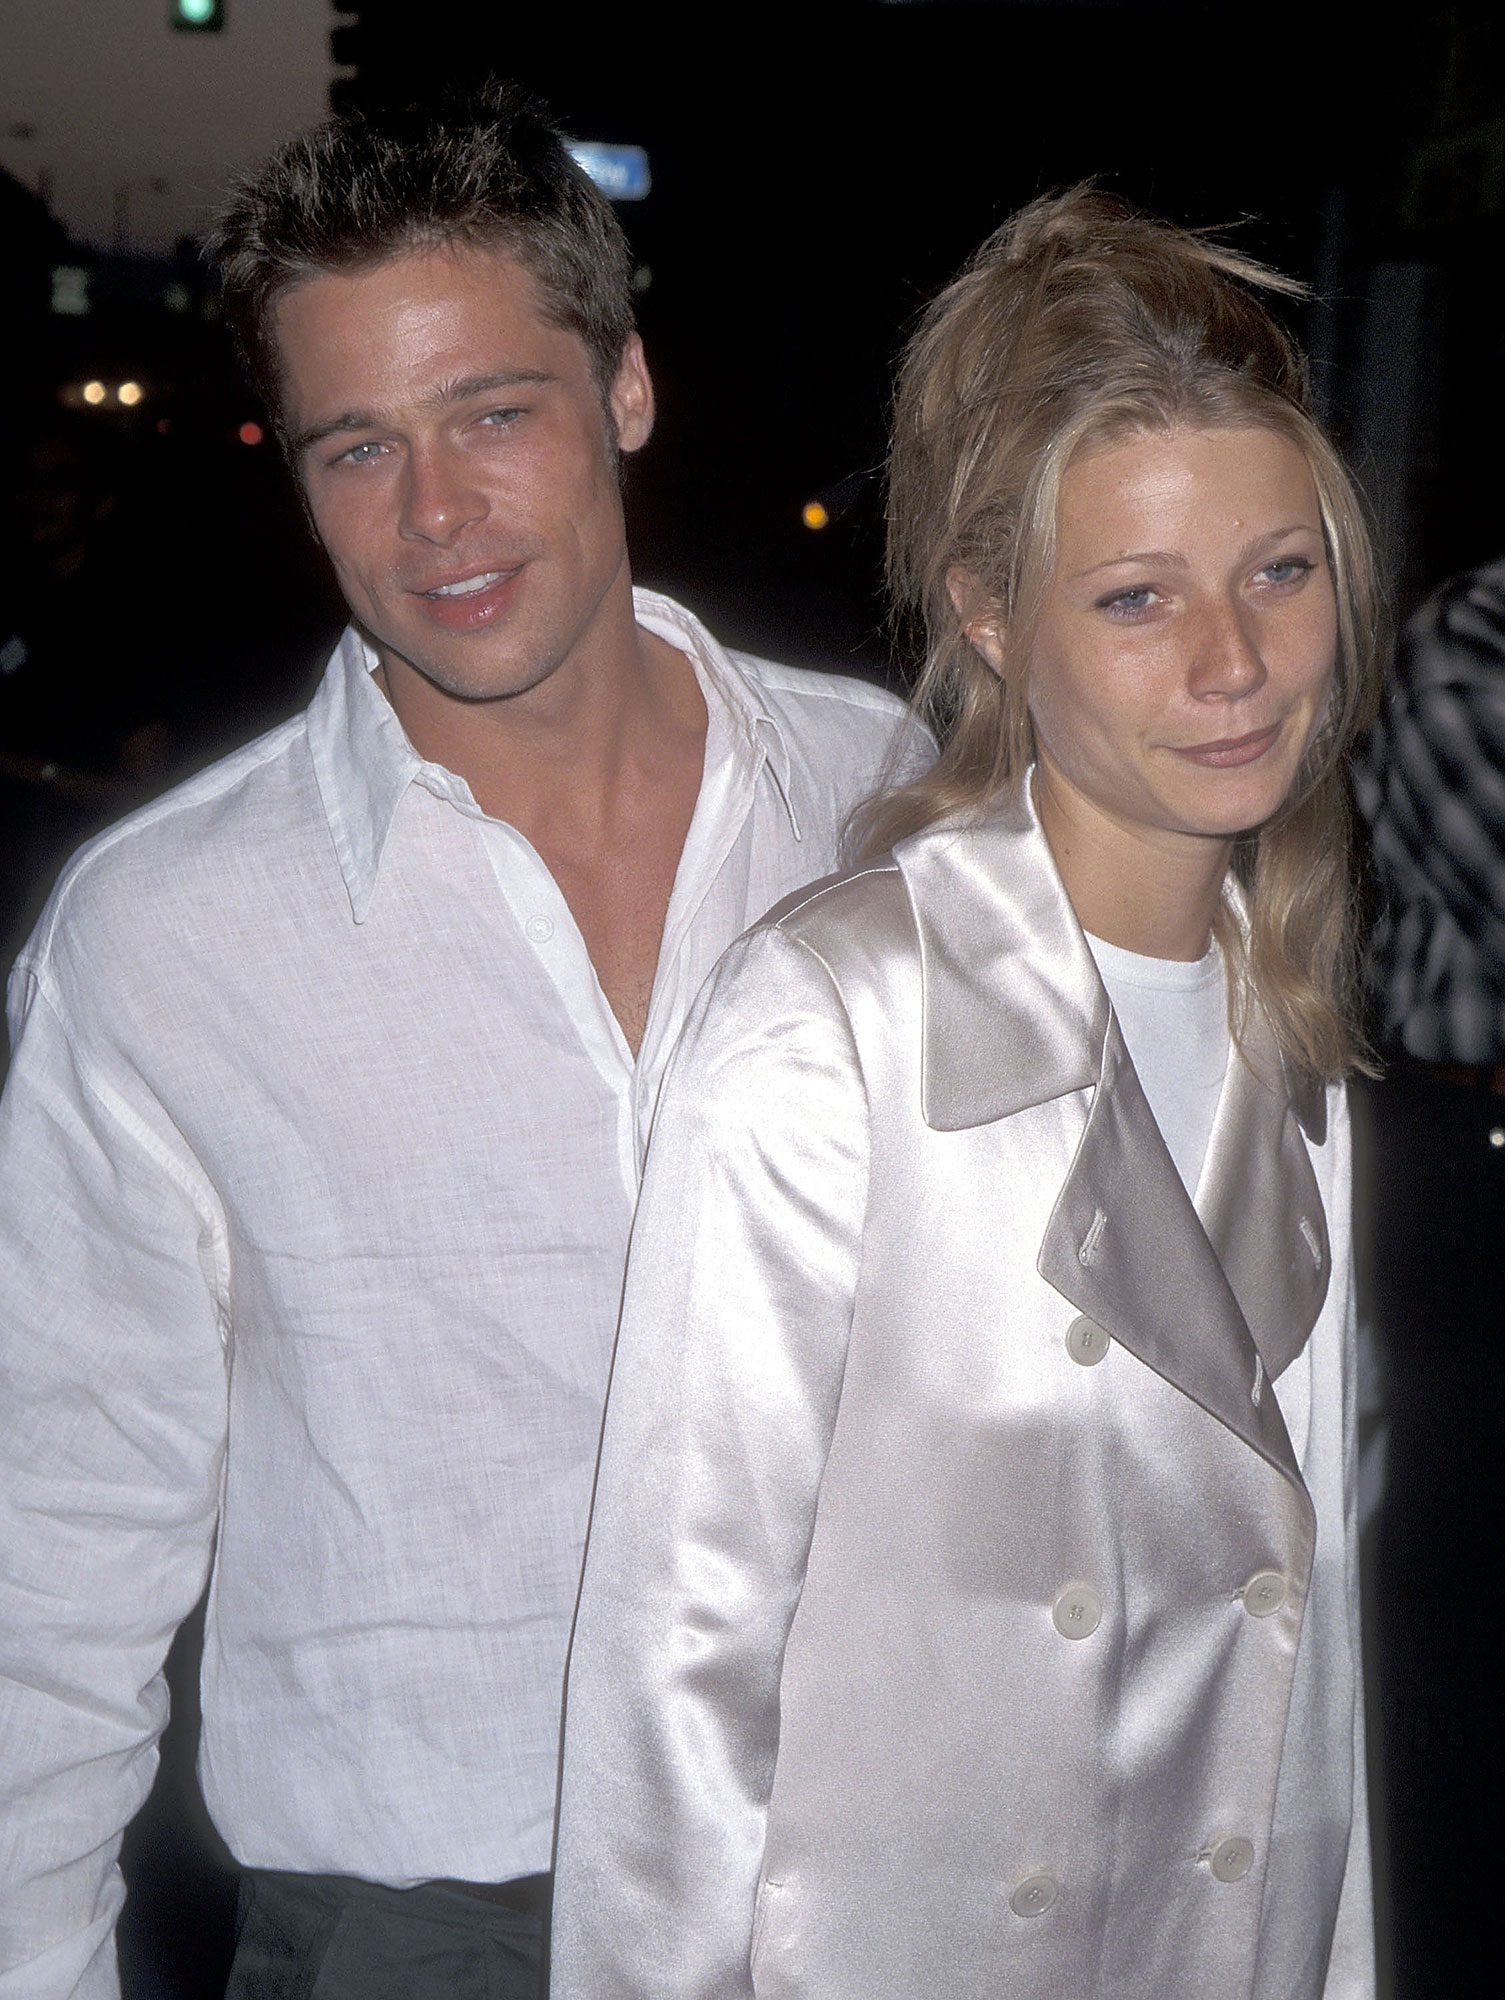 Gwyneth Paltrow Initially Turned Down 'Shakespeare in Love' After 'Terrible Breakup' With Brad Pitt - Actor Brad Pitt and actress Gwyneth Paltrow attend the 'Living in Oblivion' West Los Angeles Premiere on July 12, 1995 at the Royal Theatre in West Los Angeles, California.